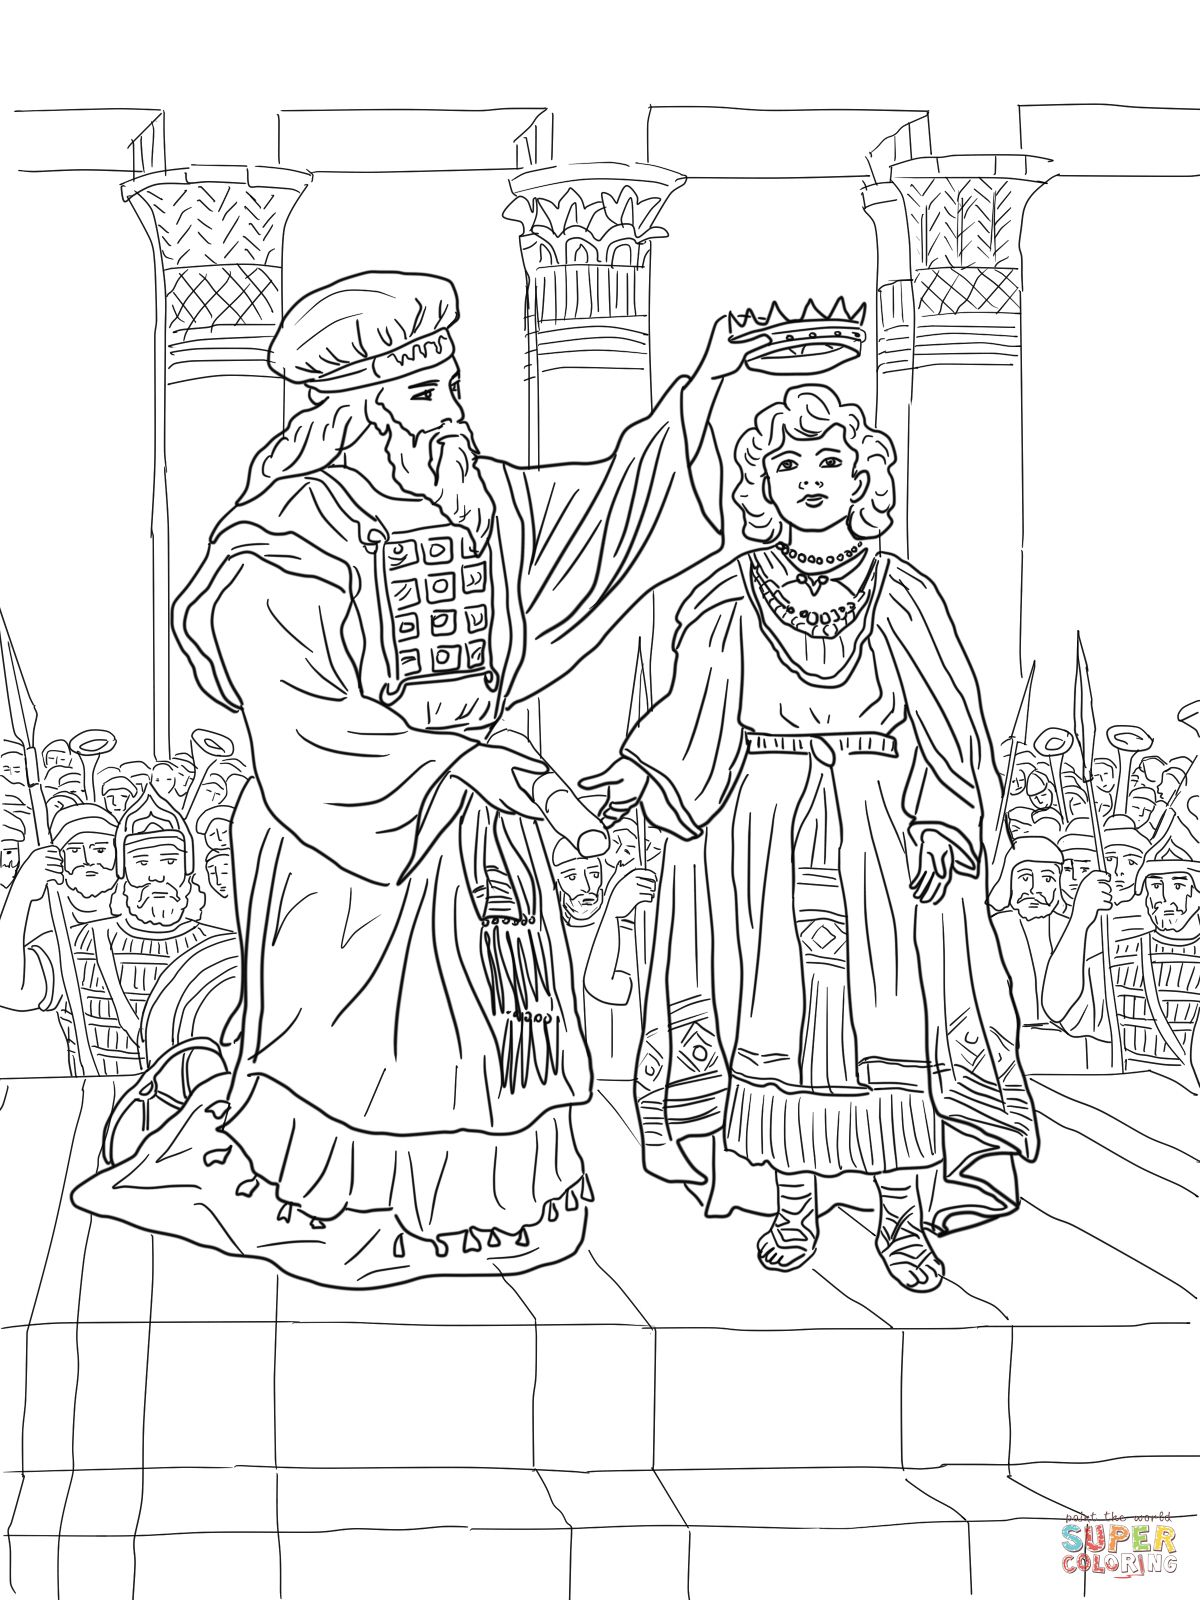 King joash crowned coloring page supercoloring com